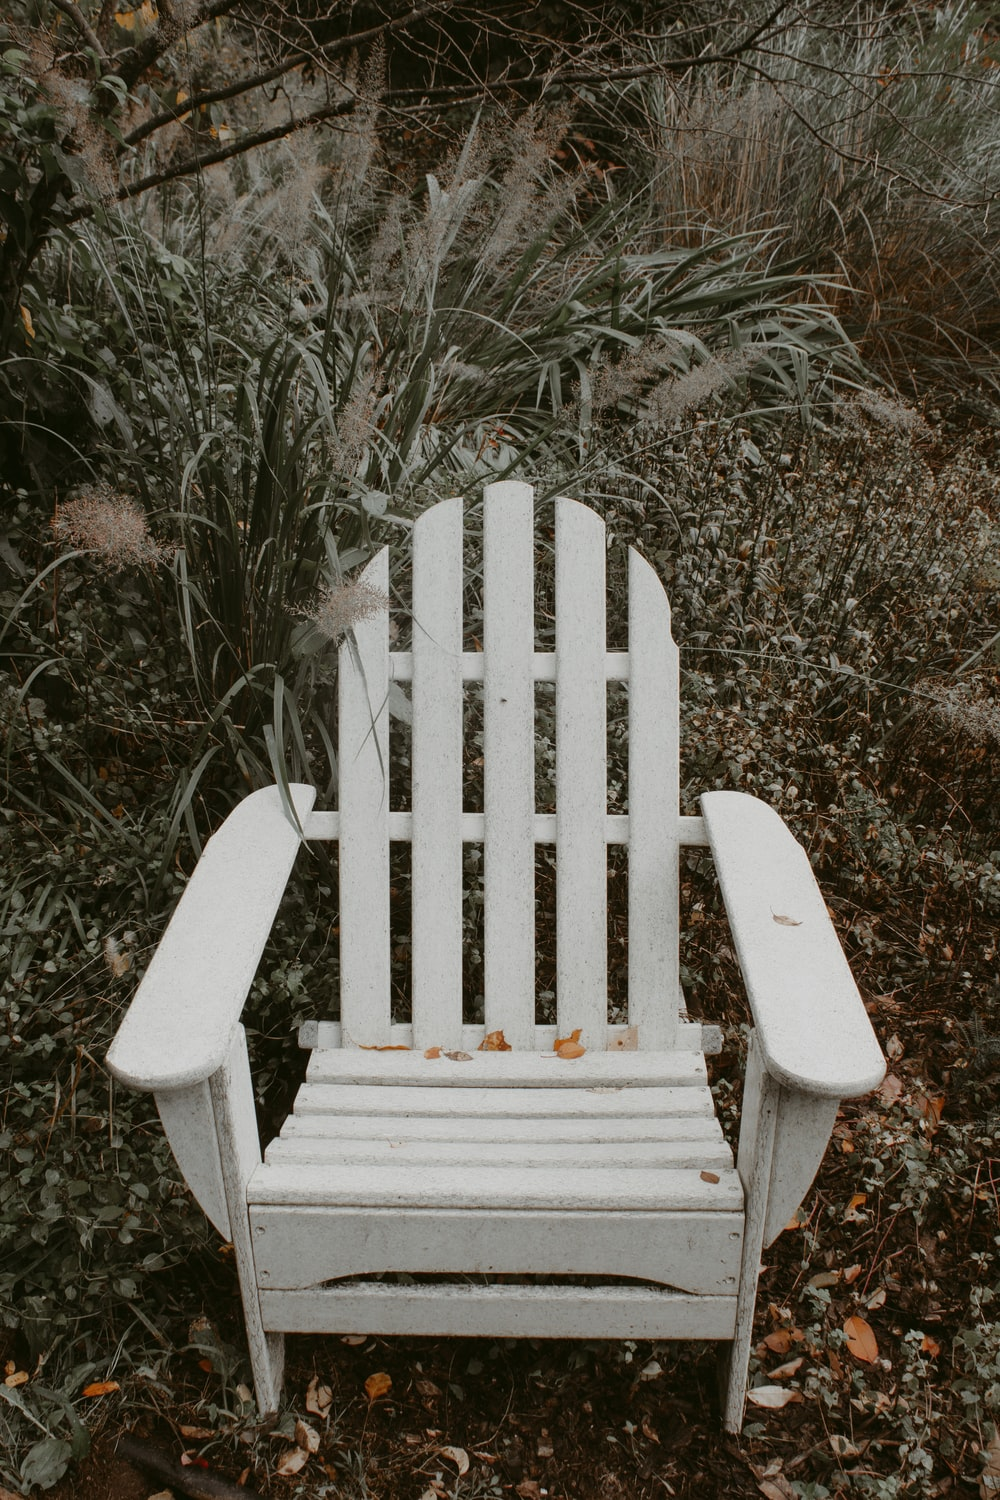 white wooden armchair on black and white photography